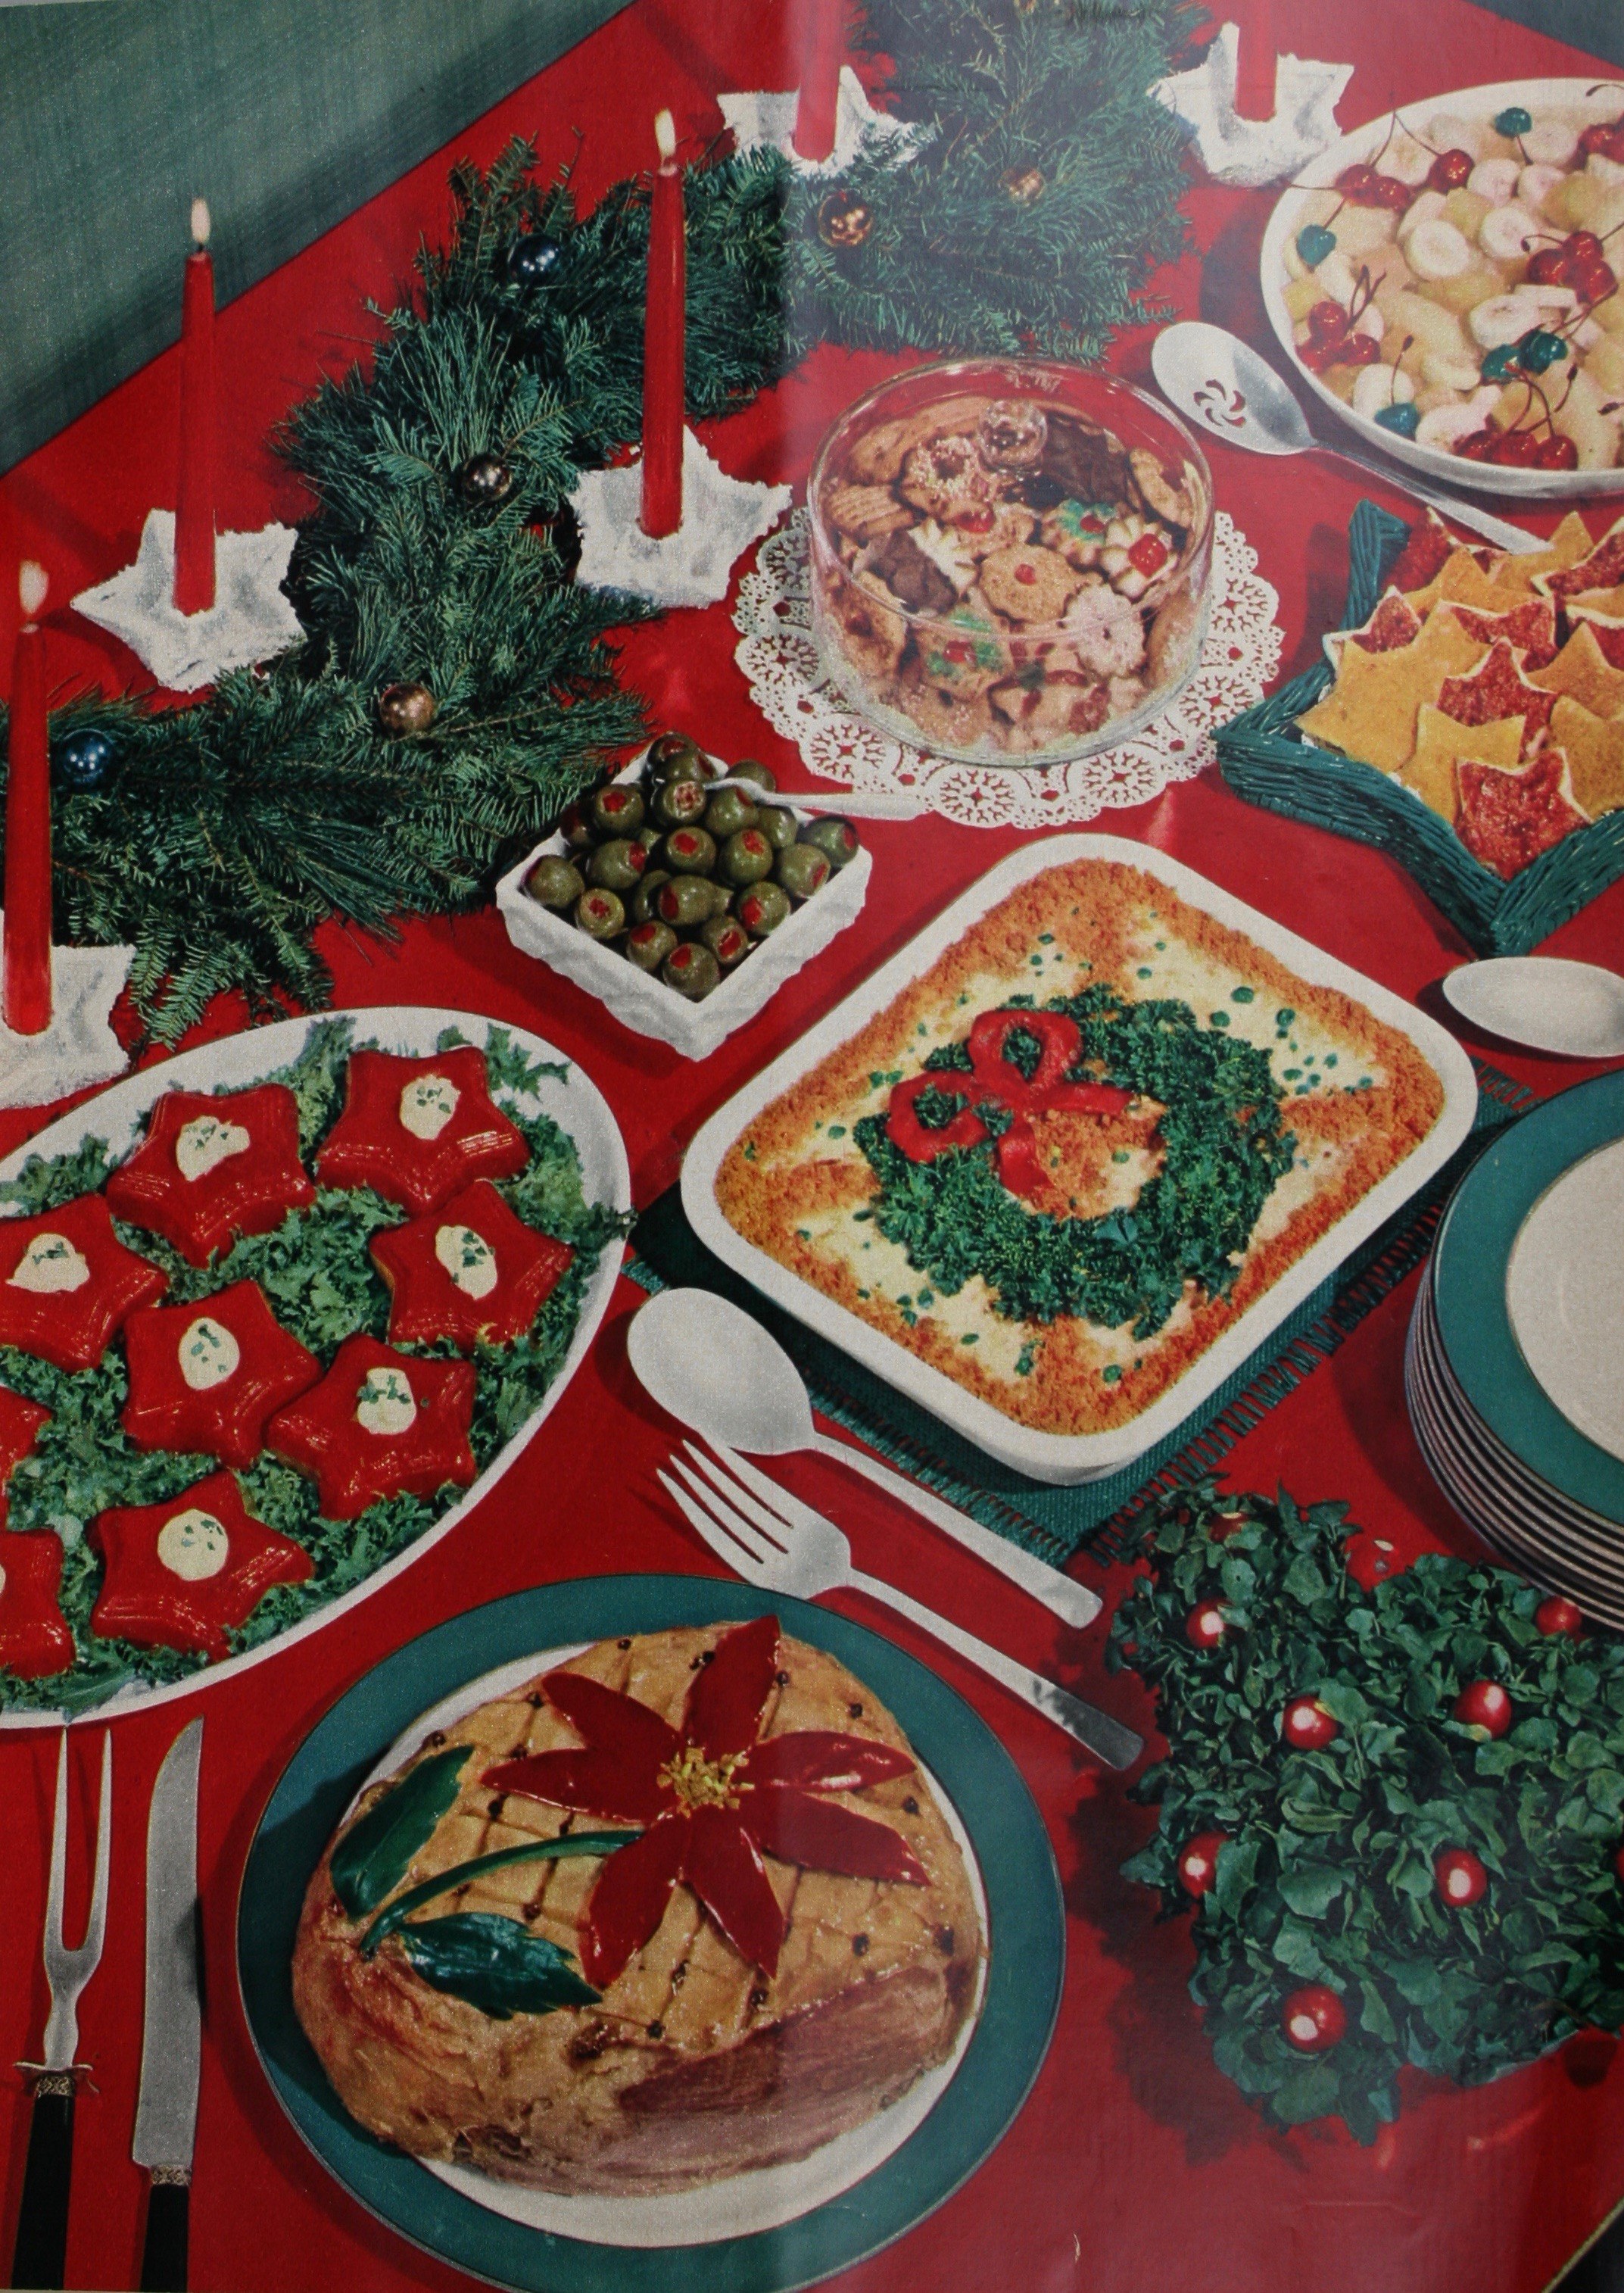 Having a party? Look at the scrumptious and colorful dishes you can make from the recipes included this month.